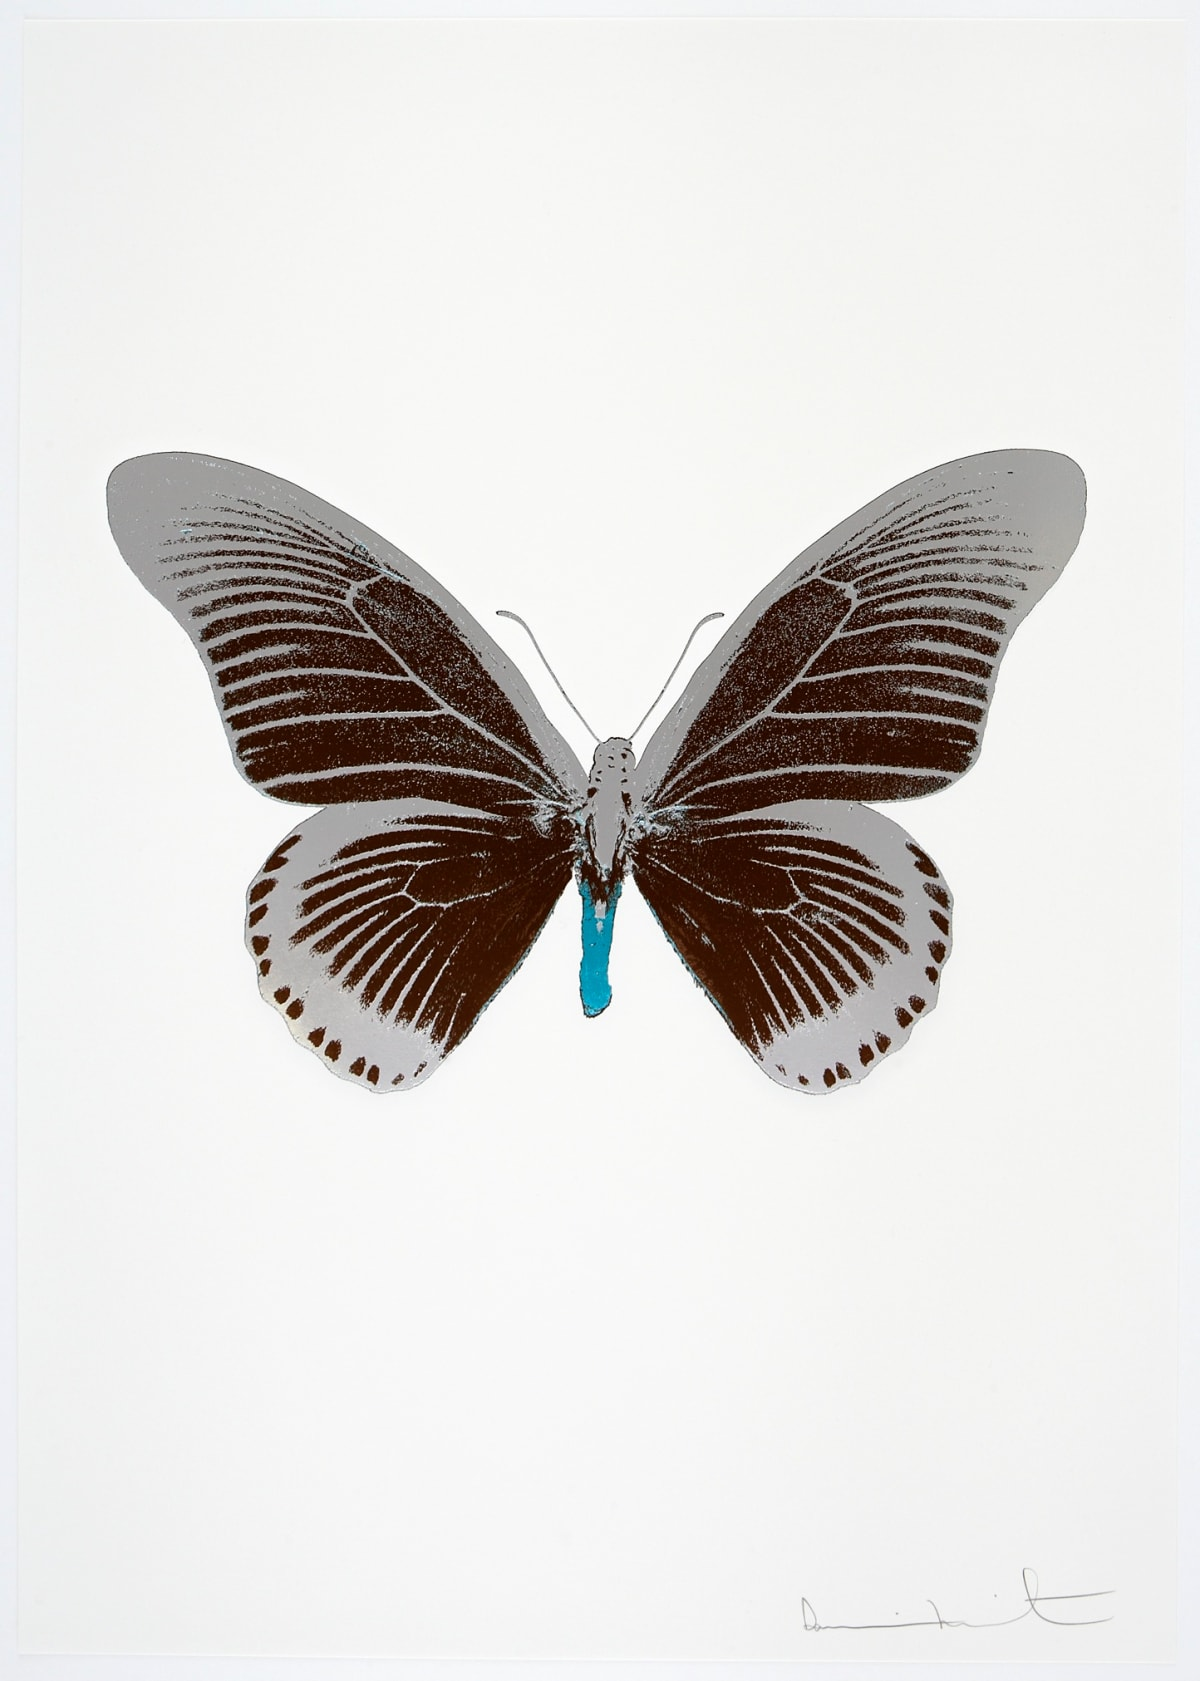 Damien Hirst The Souls IV - Chocolate/Silver Gloss/Topaz Damien Hirst butterfly foil print for sale Damien Hirst print for sale , 2010 3 colour foil block on 300gsm Arches 88 archival paper. Signed and numbered. Published by Paul Stolper and Other Criteria 72 x 51cm OC8018 / 1418-41 Edition of 15